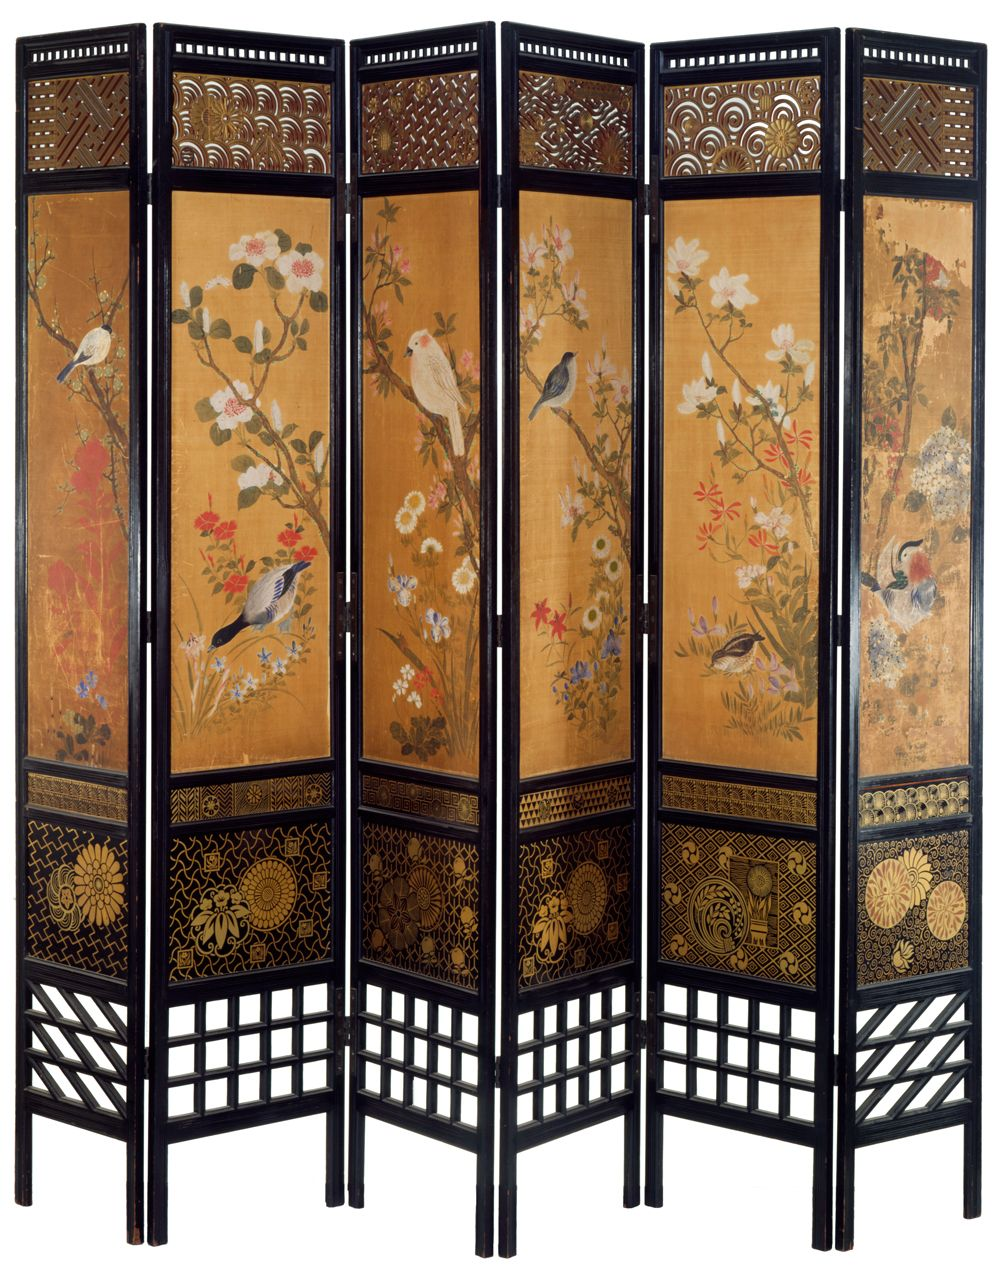 Beautiful Room Divider Screens For Your Interior Privacy Idea